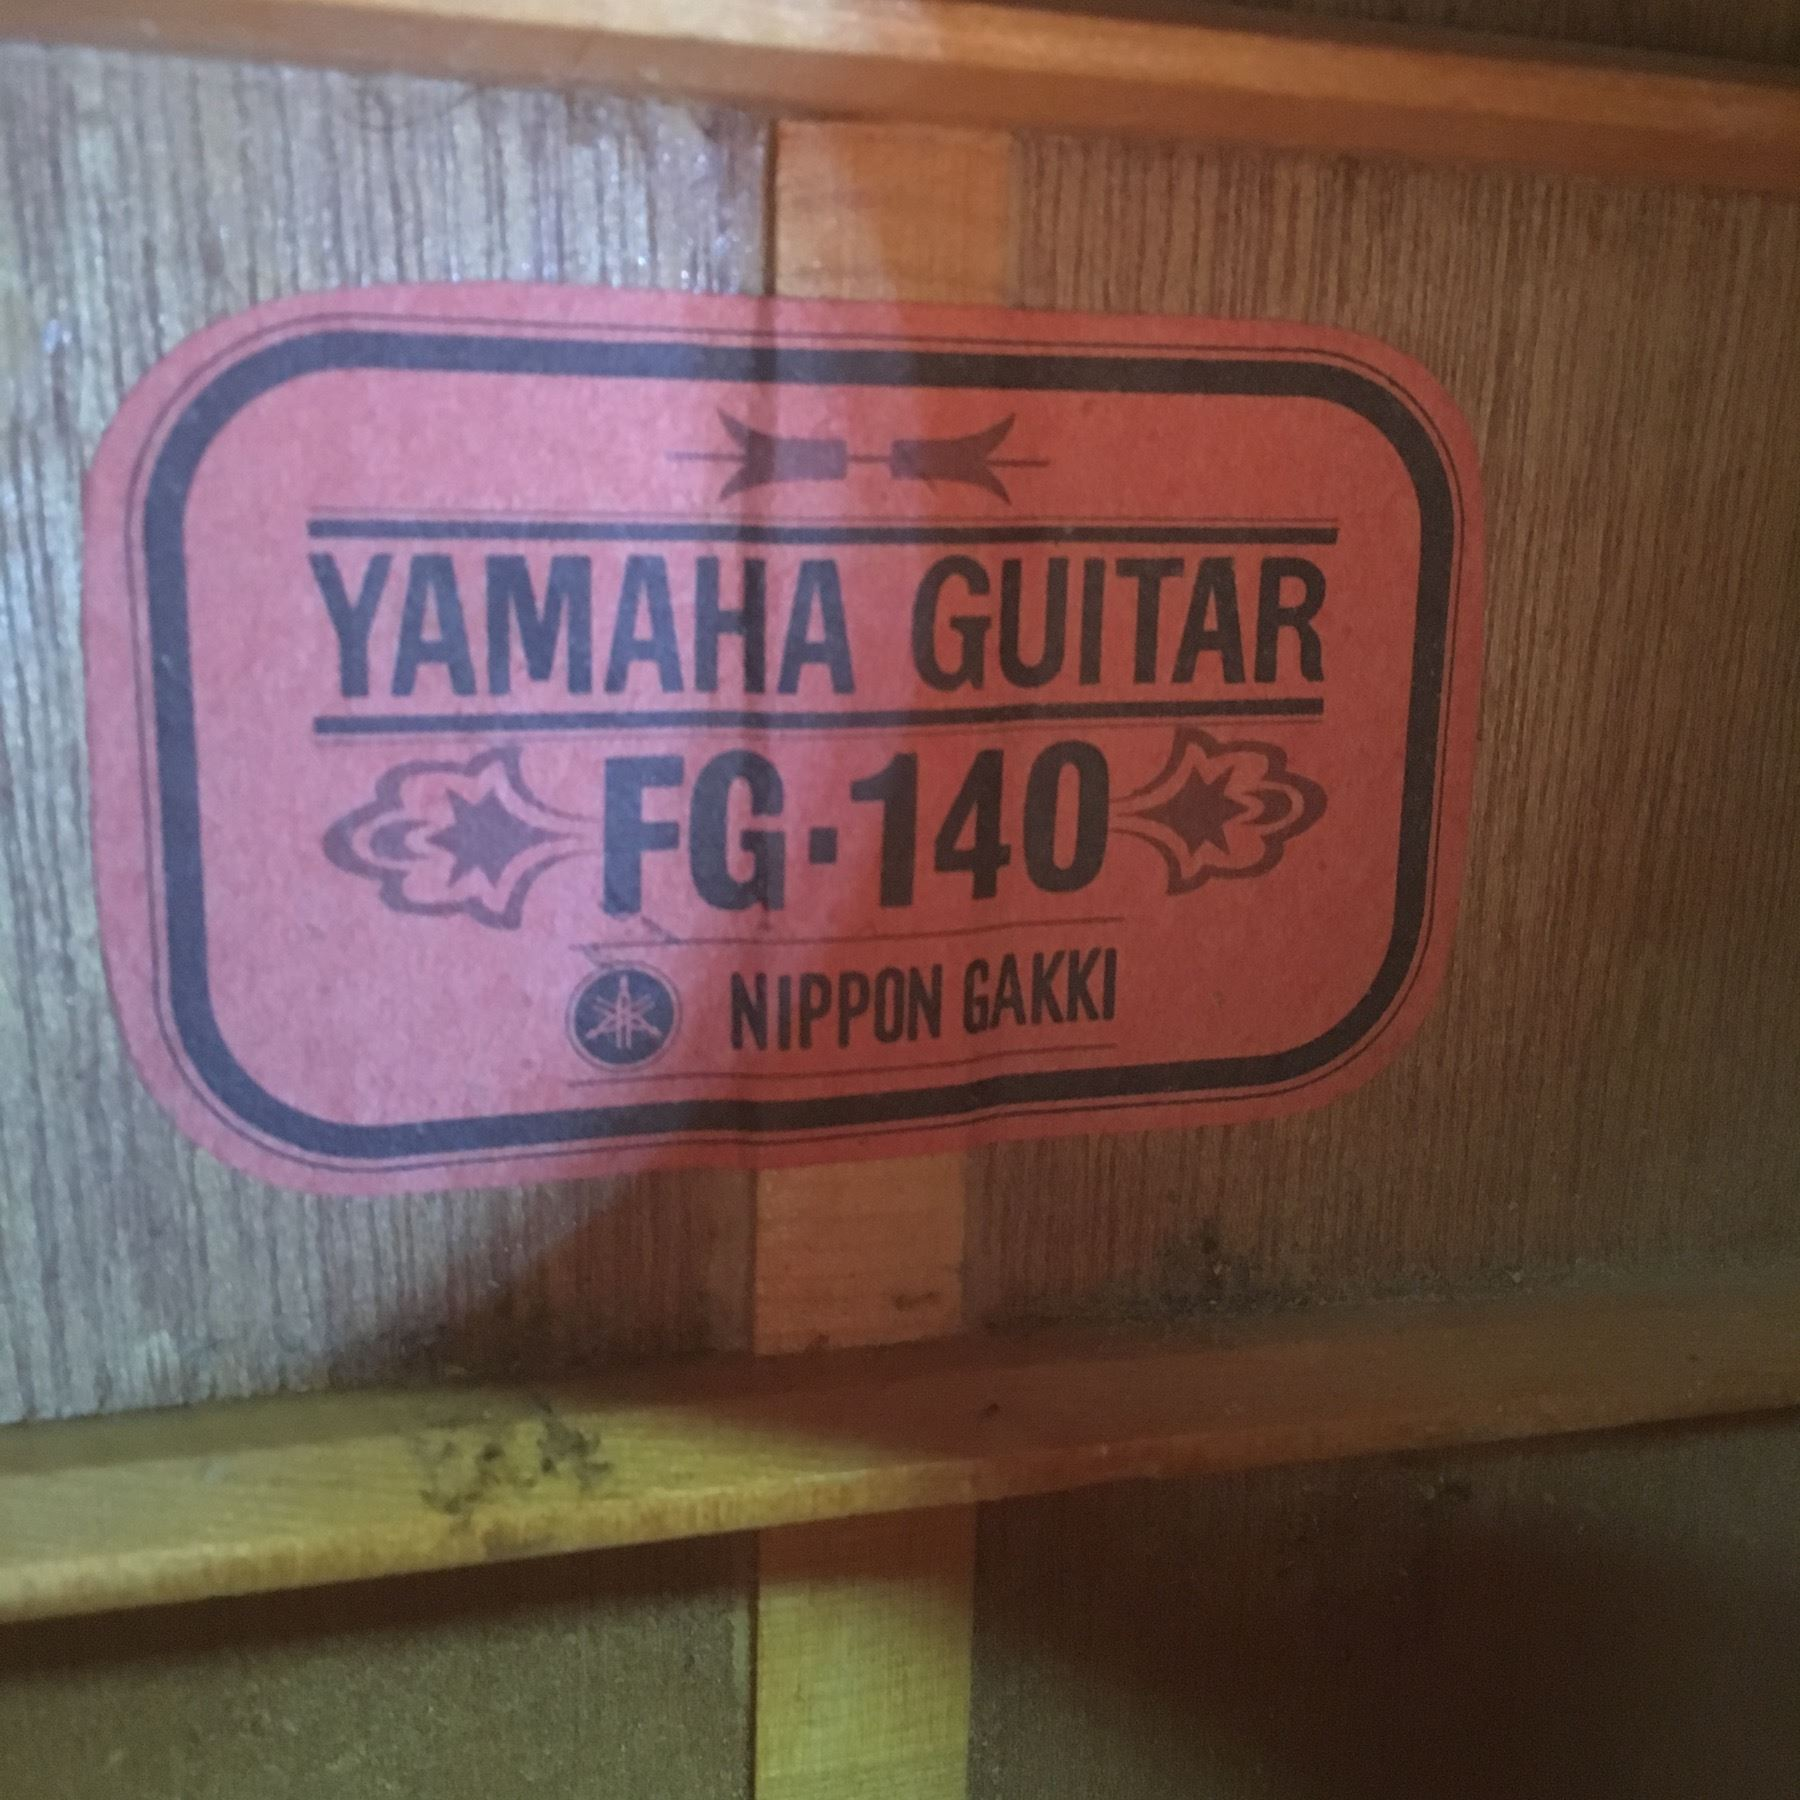 YAMAHA MODEL FG-140 ACOUSTIC GUITAR, MADE BY NIPPON GAKKI IN